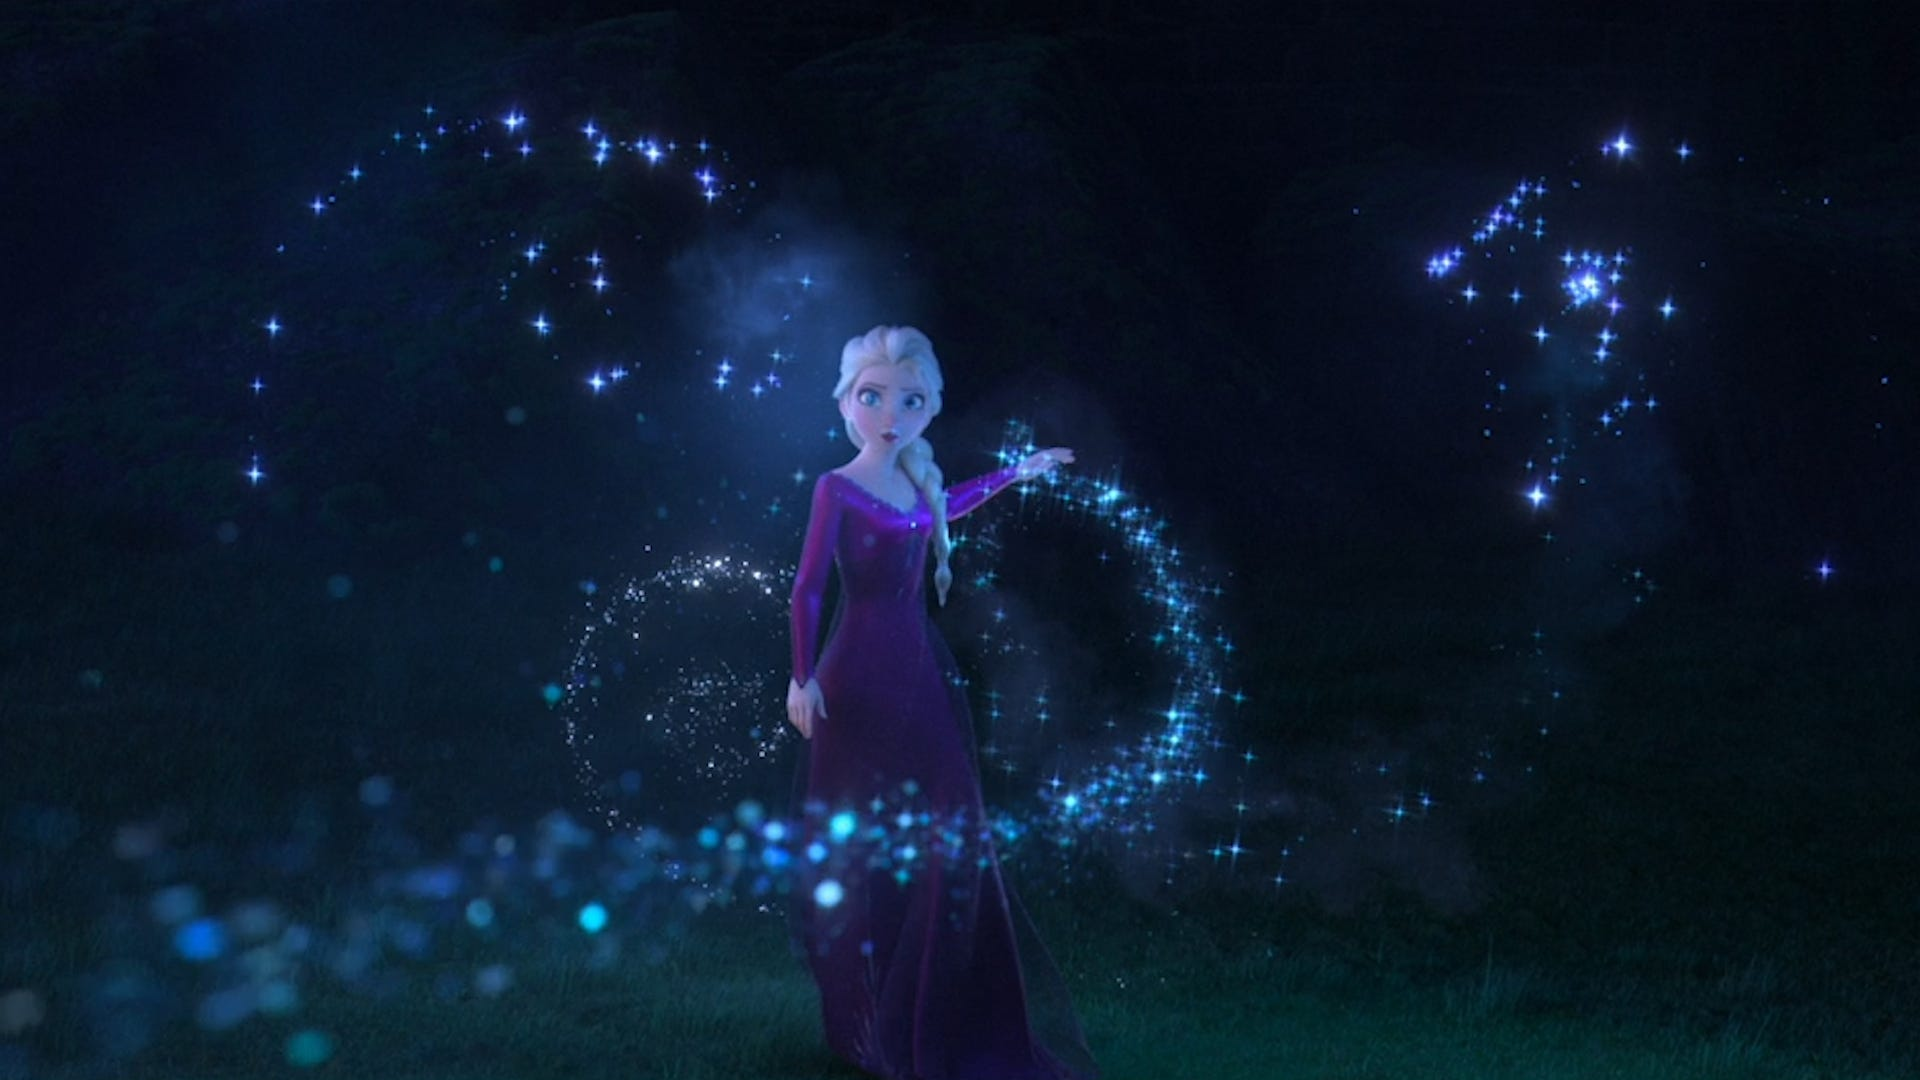 Elsa ventures into the unknown in Disney s pretty but messy  Frozen II